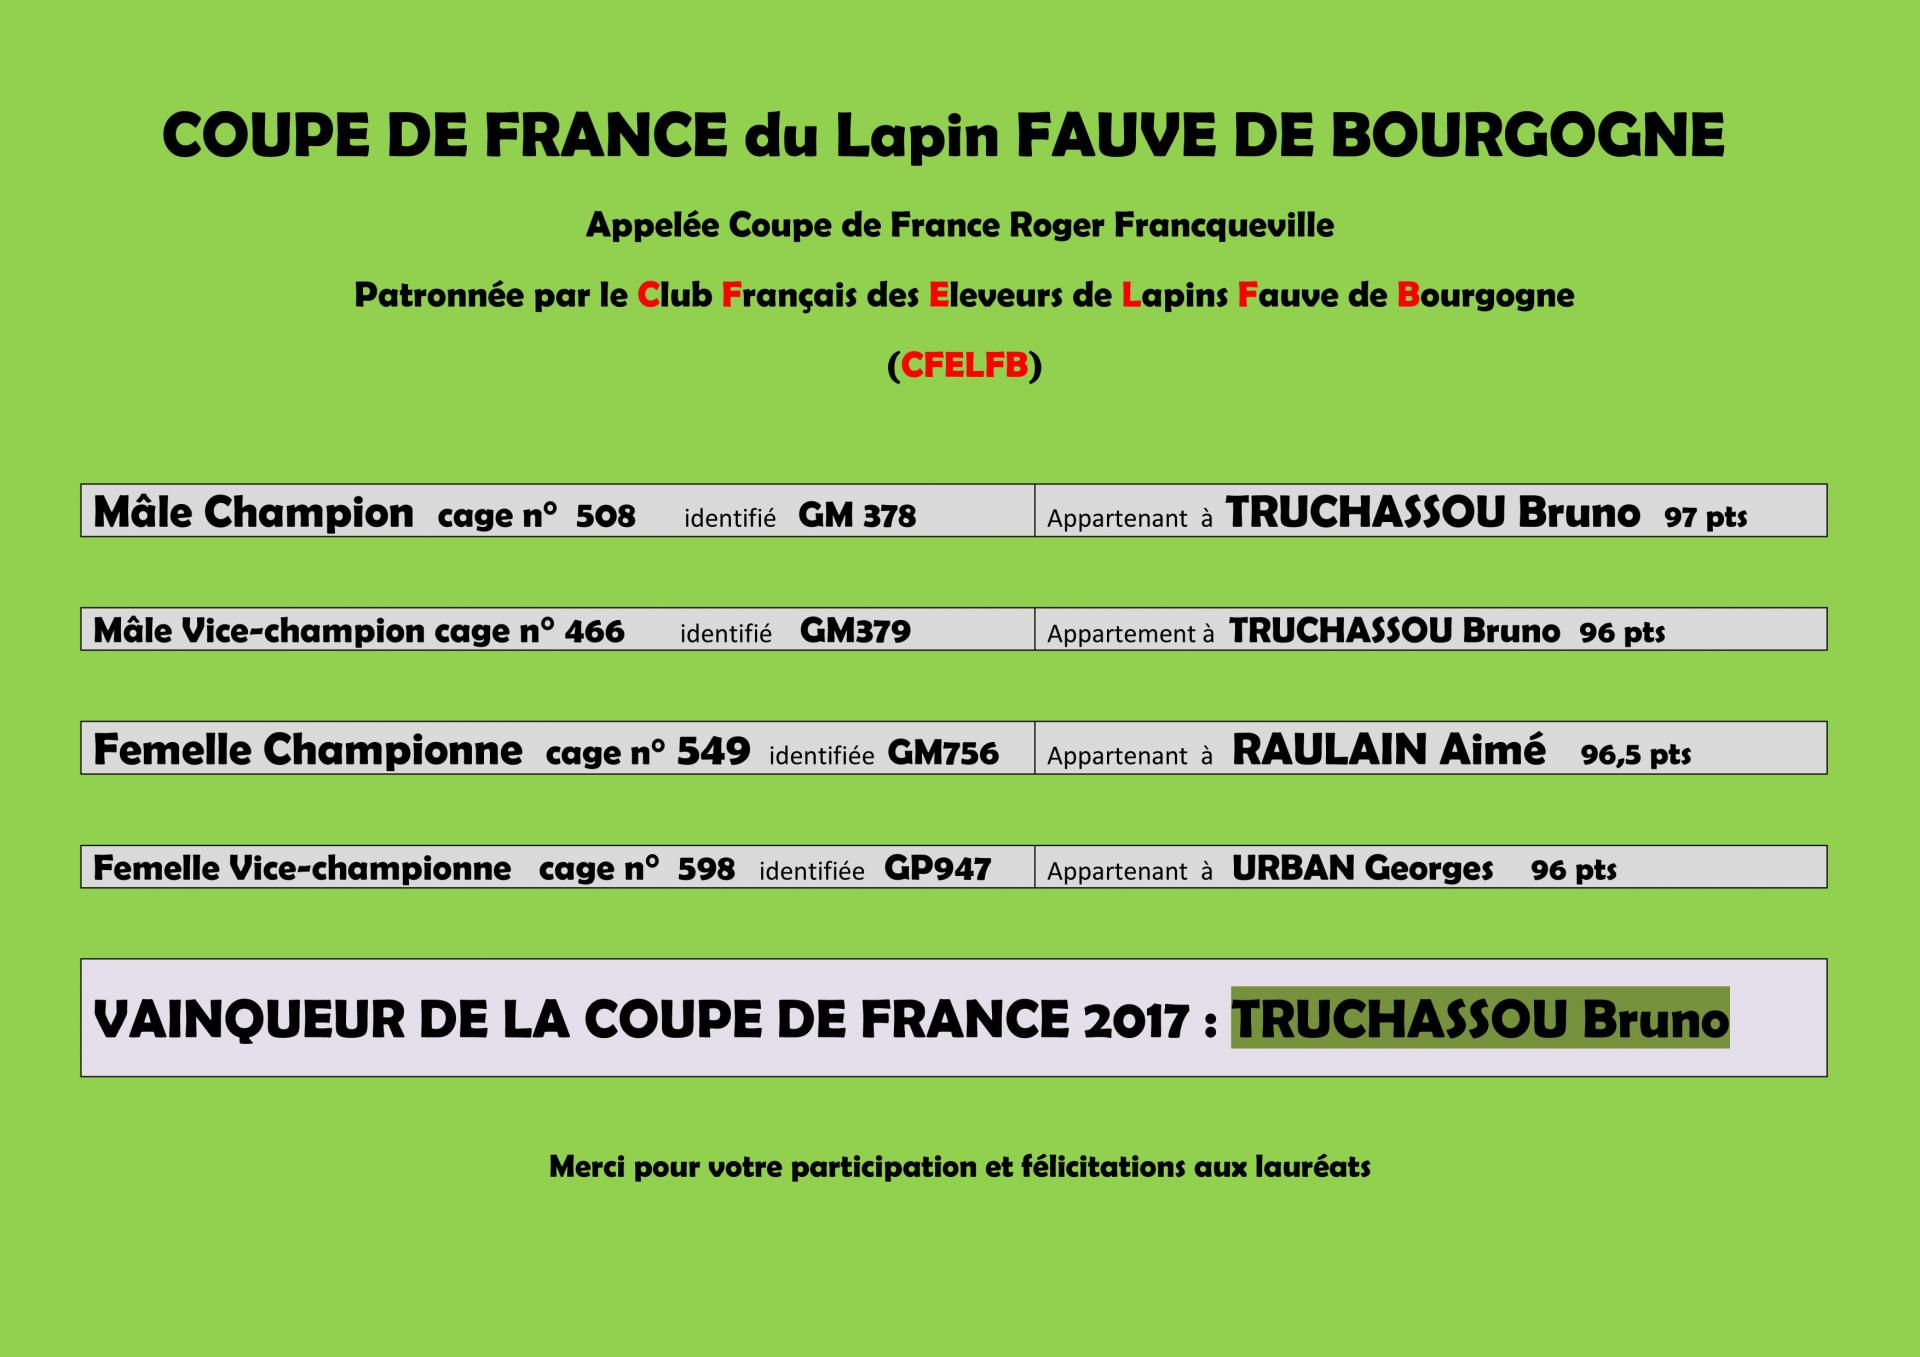 Resultats coupe de france du lapin fauve de bourgogne modifie 1